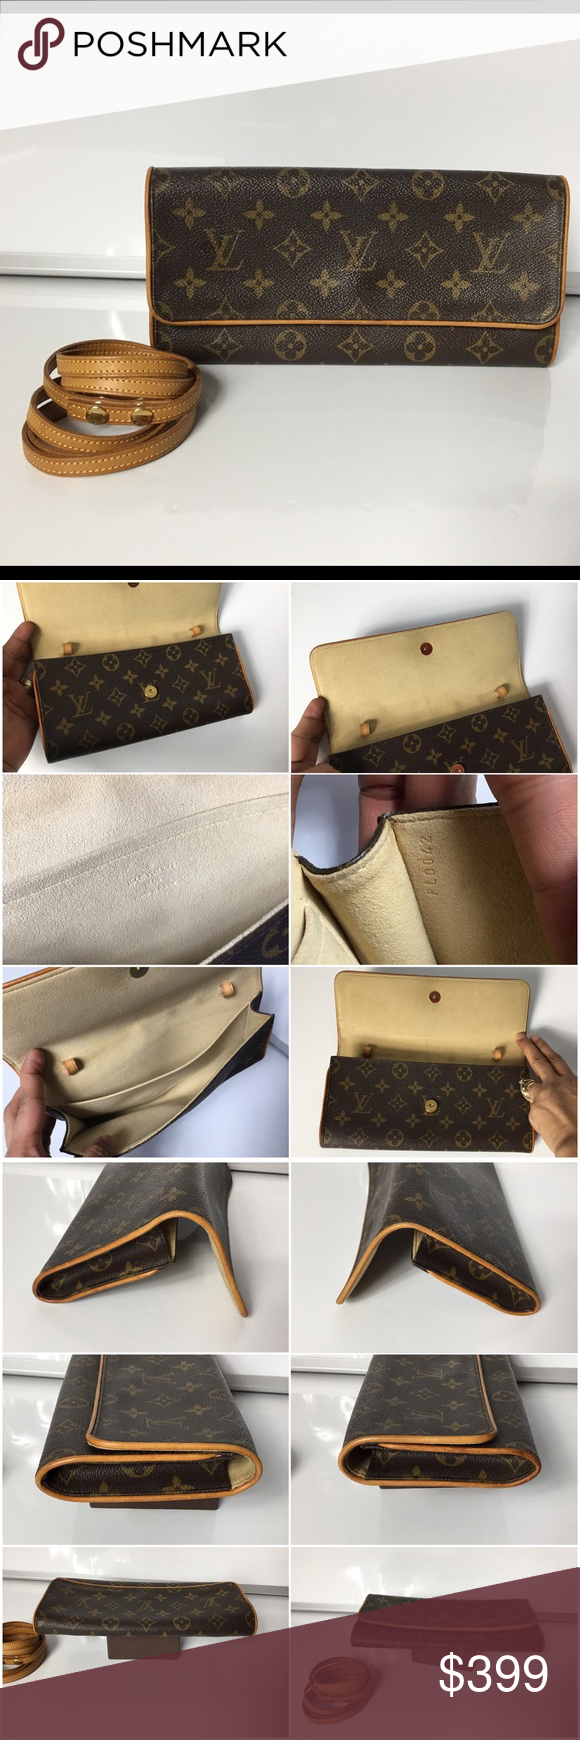 100% Authentic Louis Vuitton  Pouchette Twin GM 100% Authentic Louis Vuitton Monogram Pouchette Twin GM Cross Body Bag. Pre-Owned bag in very good used condition. no rip ,no crack, no stain on the canvas. Very clean inside. No bad odor/ no smell. Leather and strap has marks and sign of used. MADE IN FRANCE DATE CODE FL0042 ( April 2002).  Please check all the pictures.-In order to avoid unnecessary return. 100% authentic or your money - no return sold as is- Louis Vuitton Bags Crossbody Bags